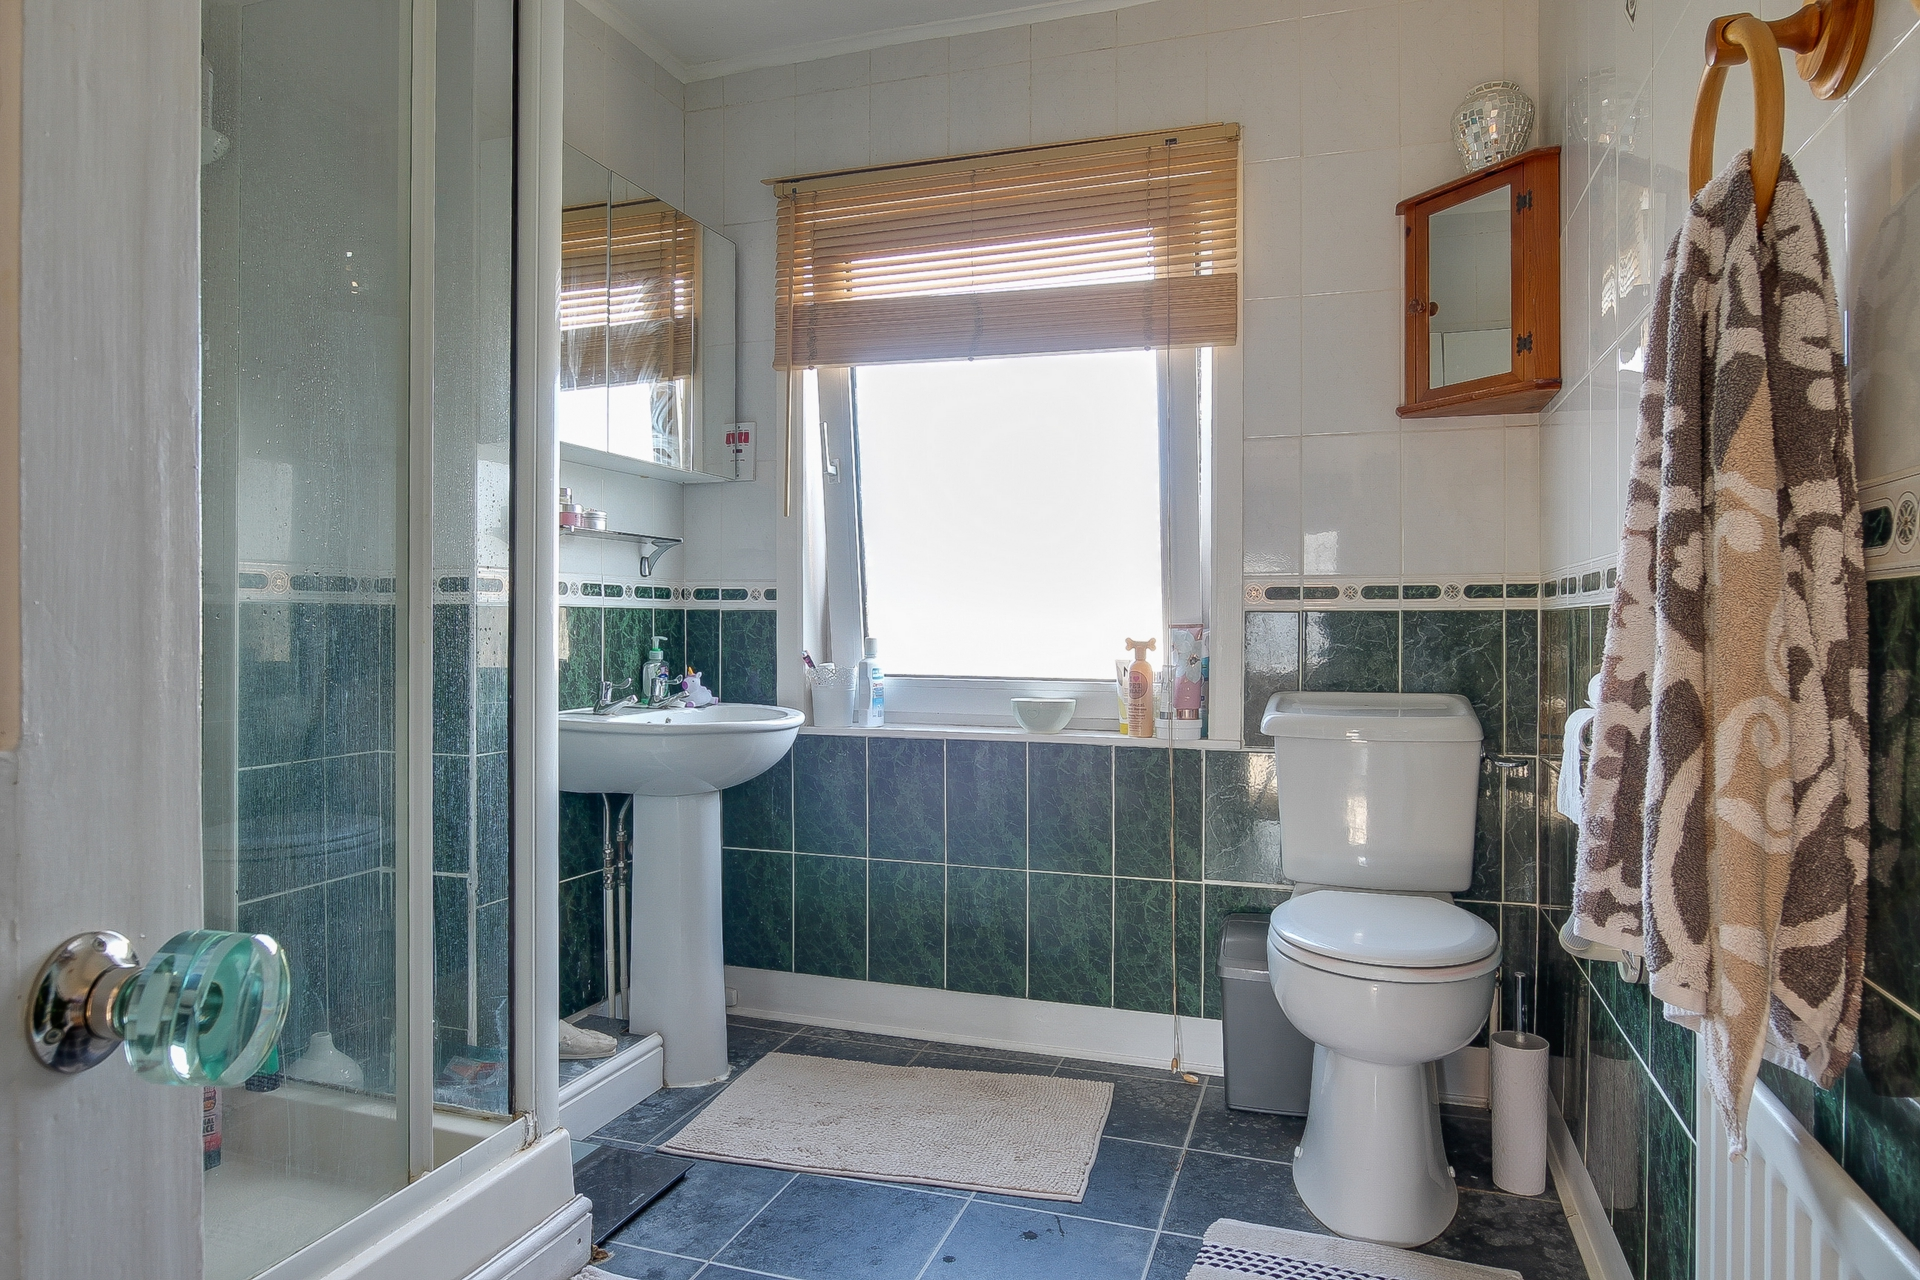 2 bed house for sale in Gordon Square, Birchington, CT7 7